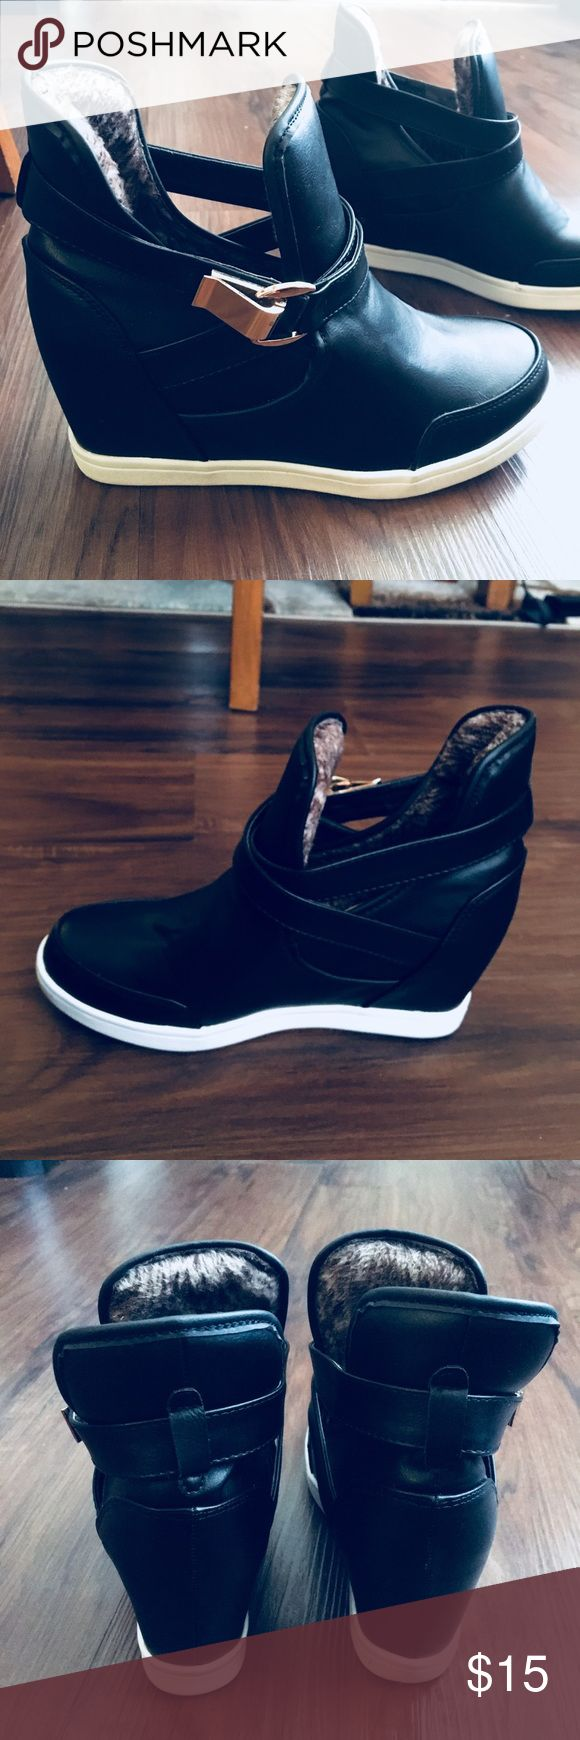 """Sneaker Wedges with Gold Buckle Detail Size 7 black faux leather sneaker 3"""" wedge height. Inside is warm faux fur material. Brand new, never worn. Incredibly comfortable and warm for the winter! Jio & Ja Shoes Wedges"""